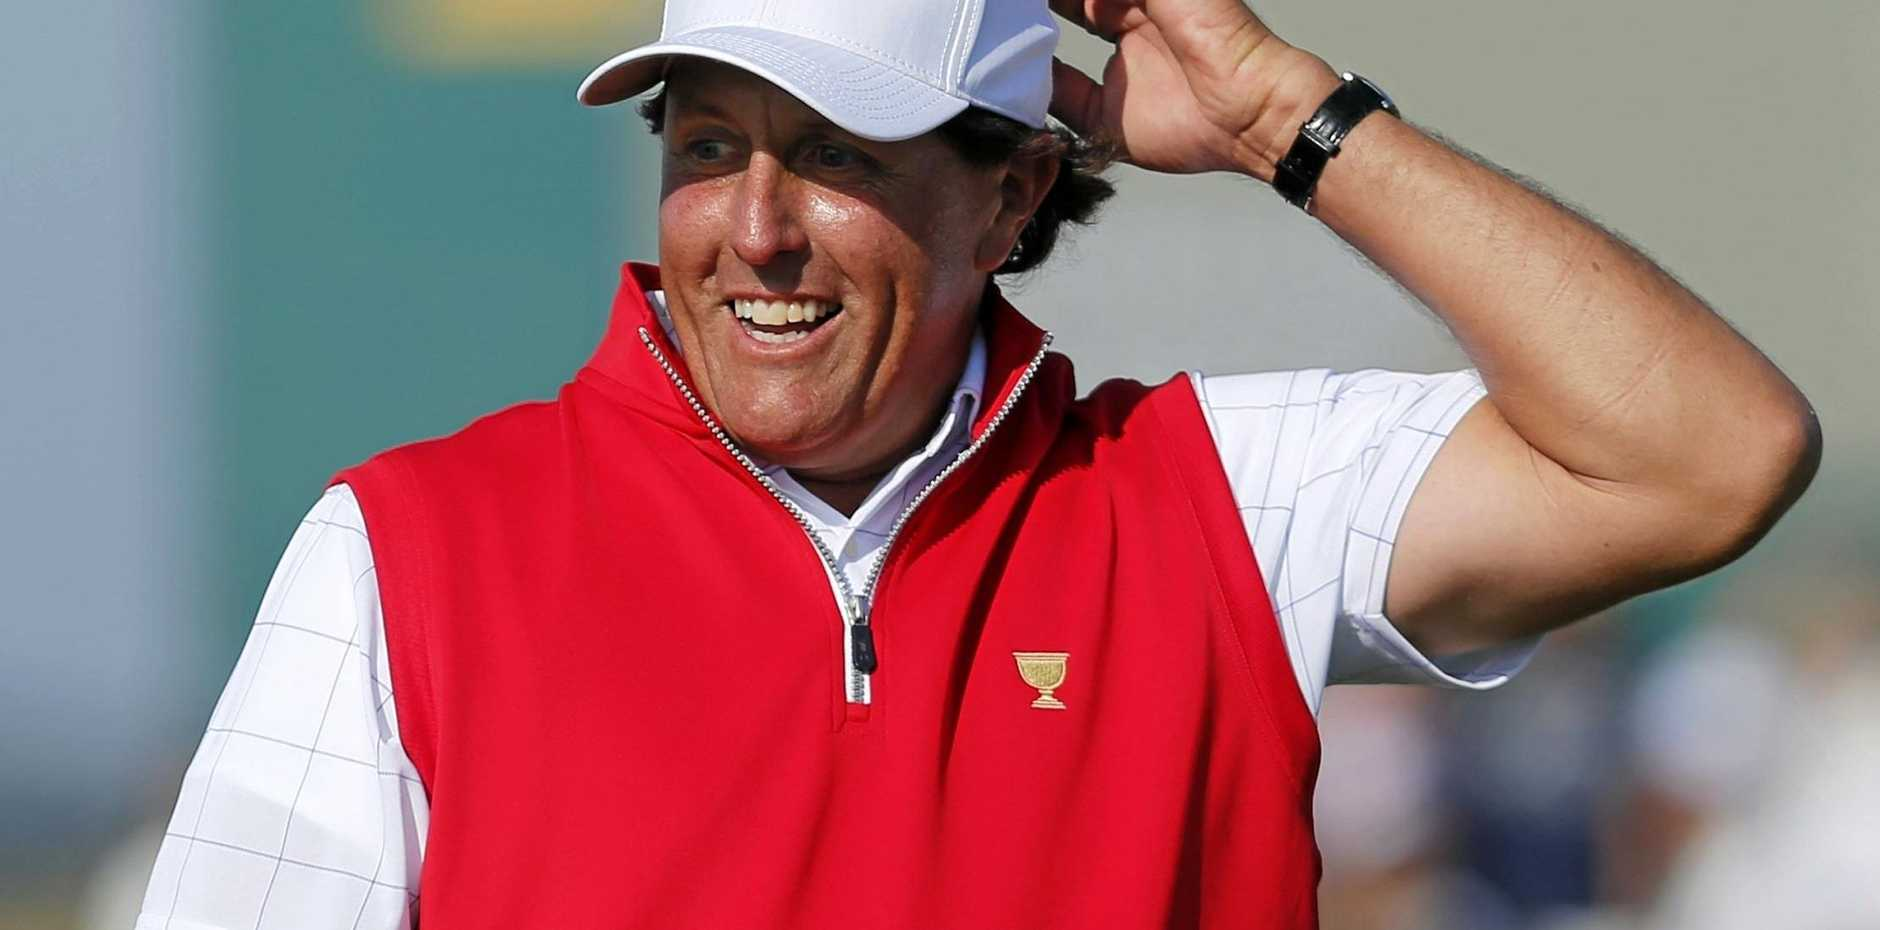 Phil Mickelson reacts to a putt on the 17th green at the 2015 Presidents Cup in Korea.